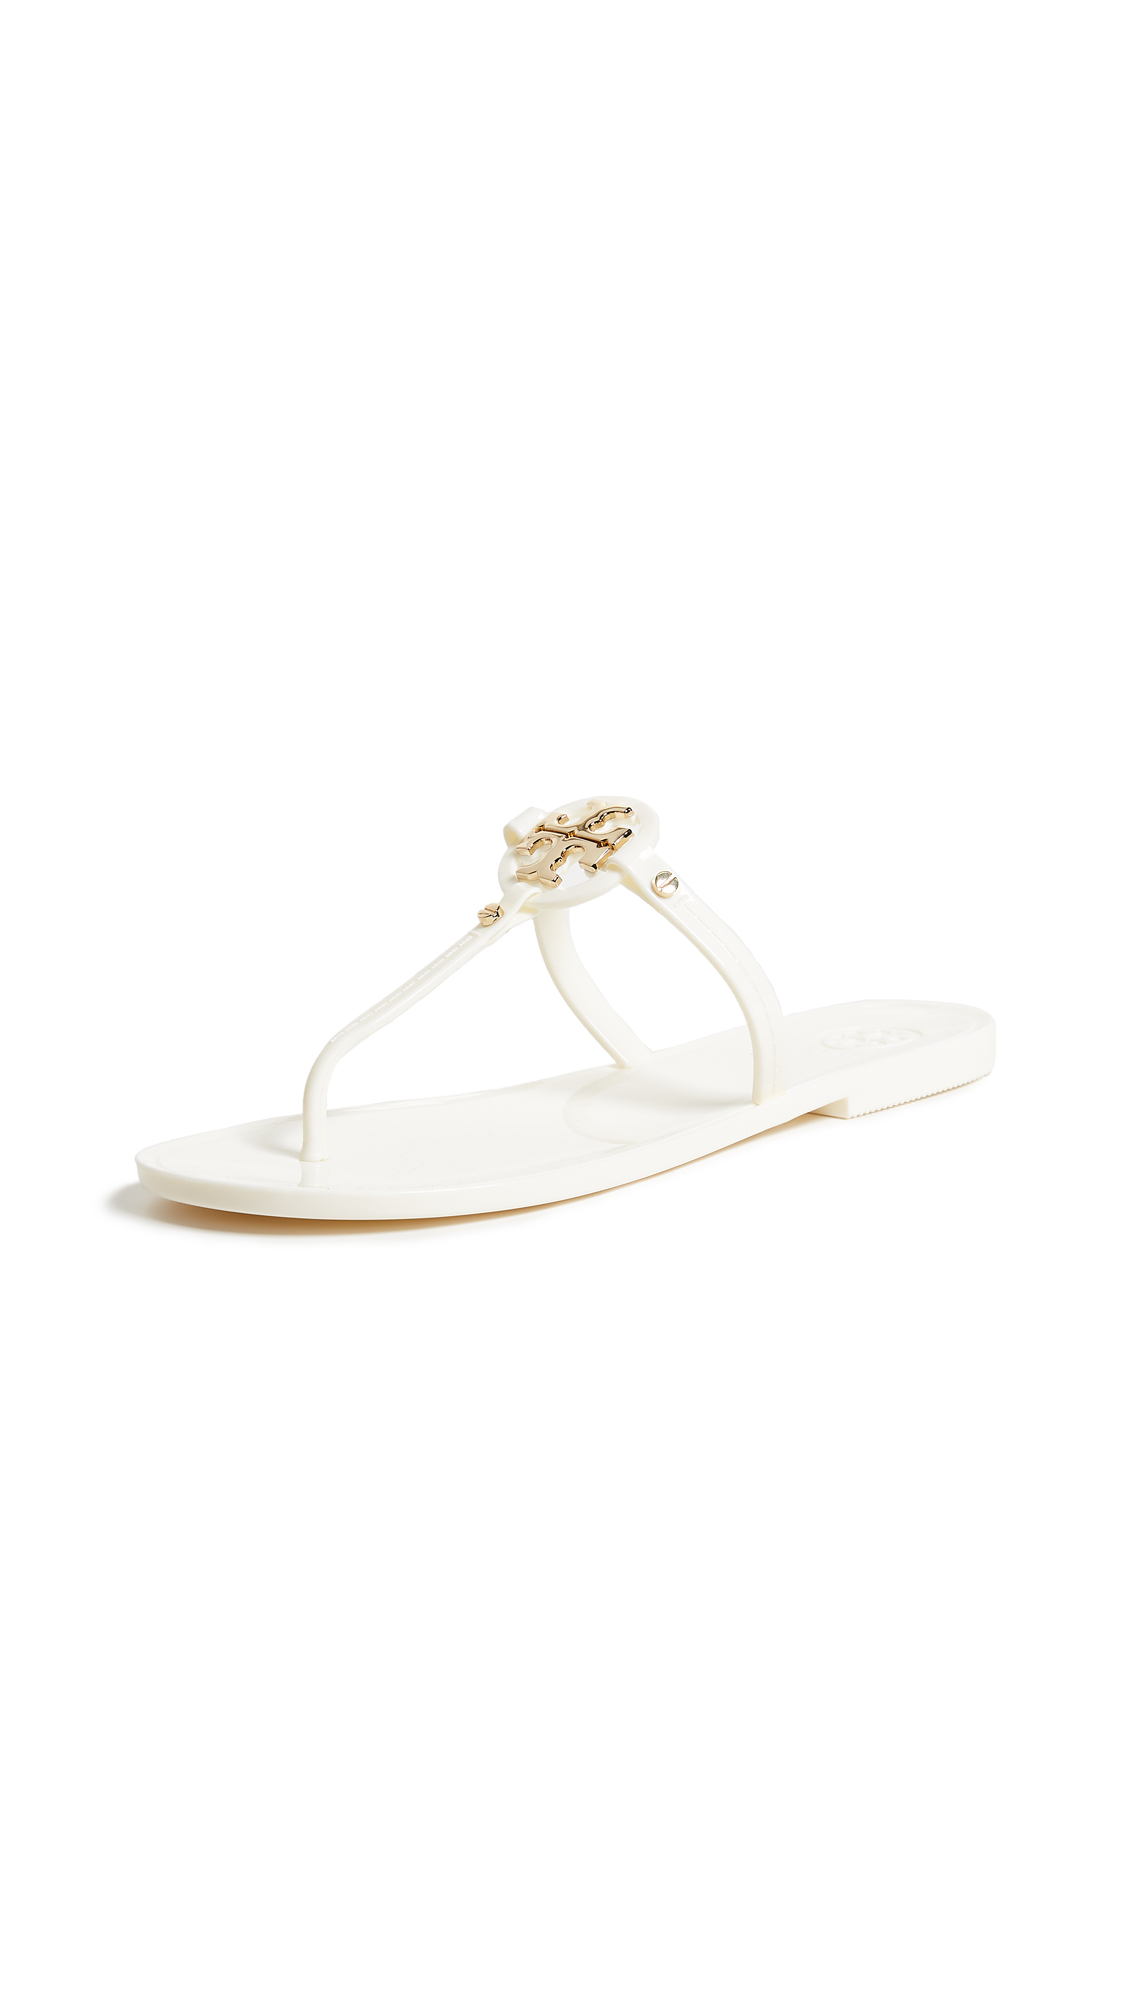 7507b8c71363a Tory Burch Mini Miller Jelly Flat Thong Sandals In Ivory